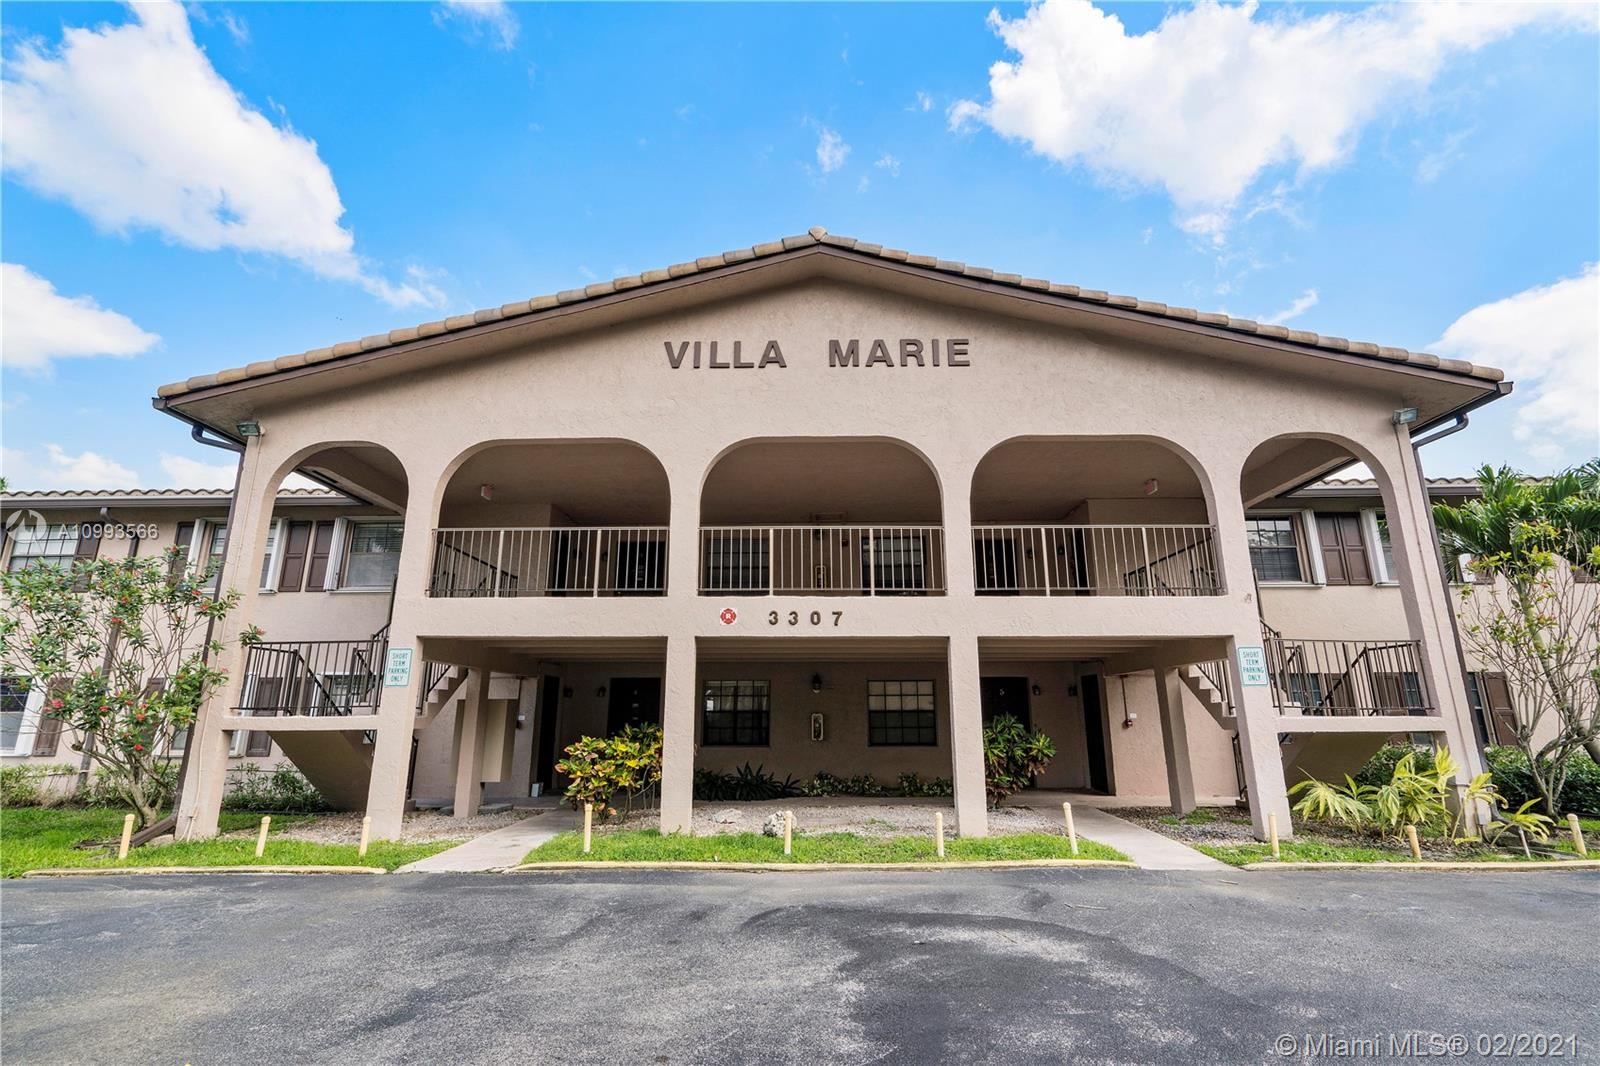 Wow! Bright And Spacious 1-Bed/1.5-Bath Unit In Villa Marie Located In The Heart Of West Coral Springs. Updated Kitchen With Lots Of Cabinets And Black Appliances. Carpet Flooring In Living Spaces With Tile Flooring In Kitchen. Continue Through The Unit To A Large Hall Closet And Half Bath With A White Vanity And Mirror. Reach The Large Master Suite With Dual Closets And Private Master Bath. Screened-In Patio With Additional Storage And A Utility/Laundry Room With A Full-Size Washer And Dryer. The Screened-In Patio Has Outside Access To The Lush Green Landscaping And A Meticulously Maintained Pool. Low Maintenance Fee Includes Common Areas, Roof, Management, Liability And Exterior Insurance, Pest Control, Direct TV, Water, And Pool Maintenance. 1 Parking Spot Included. Must See!